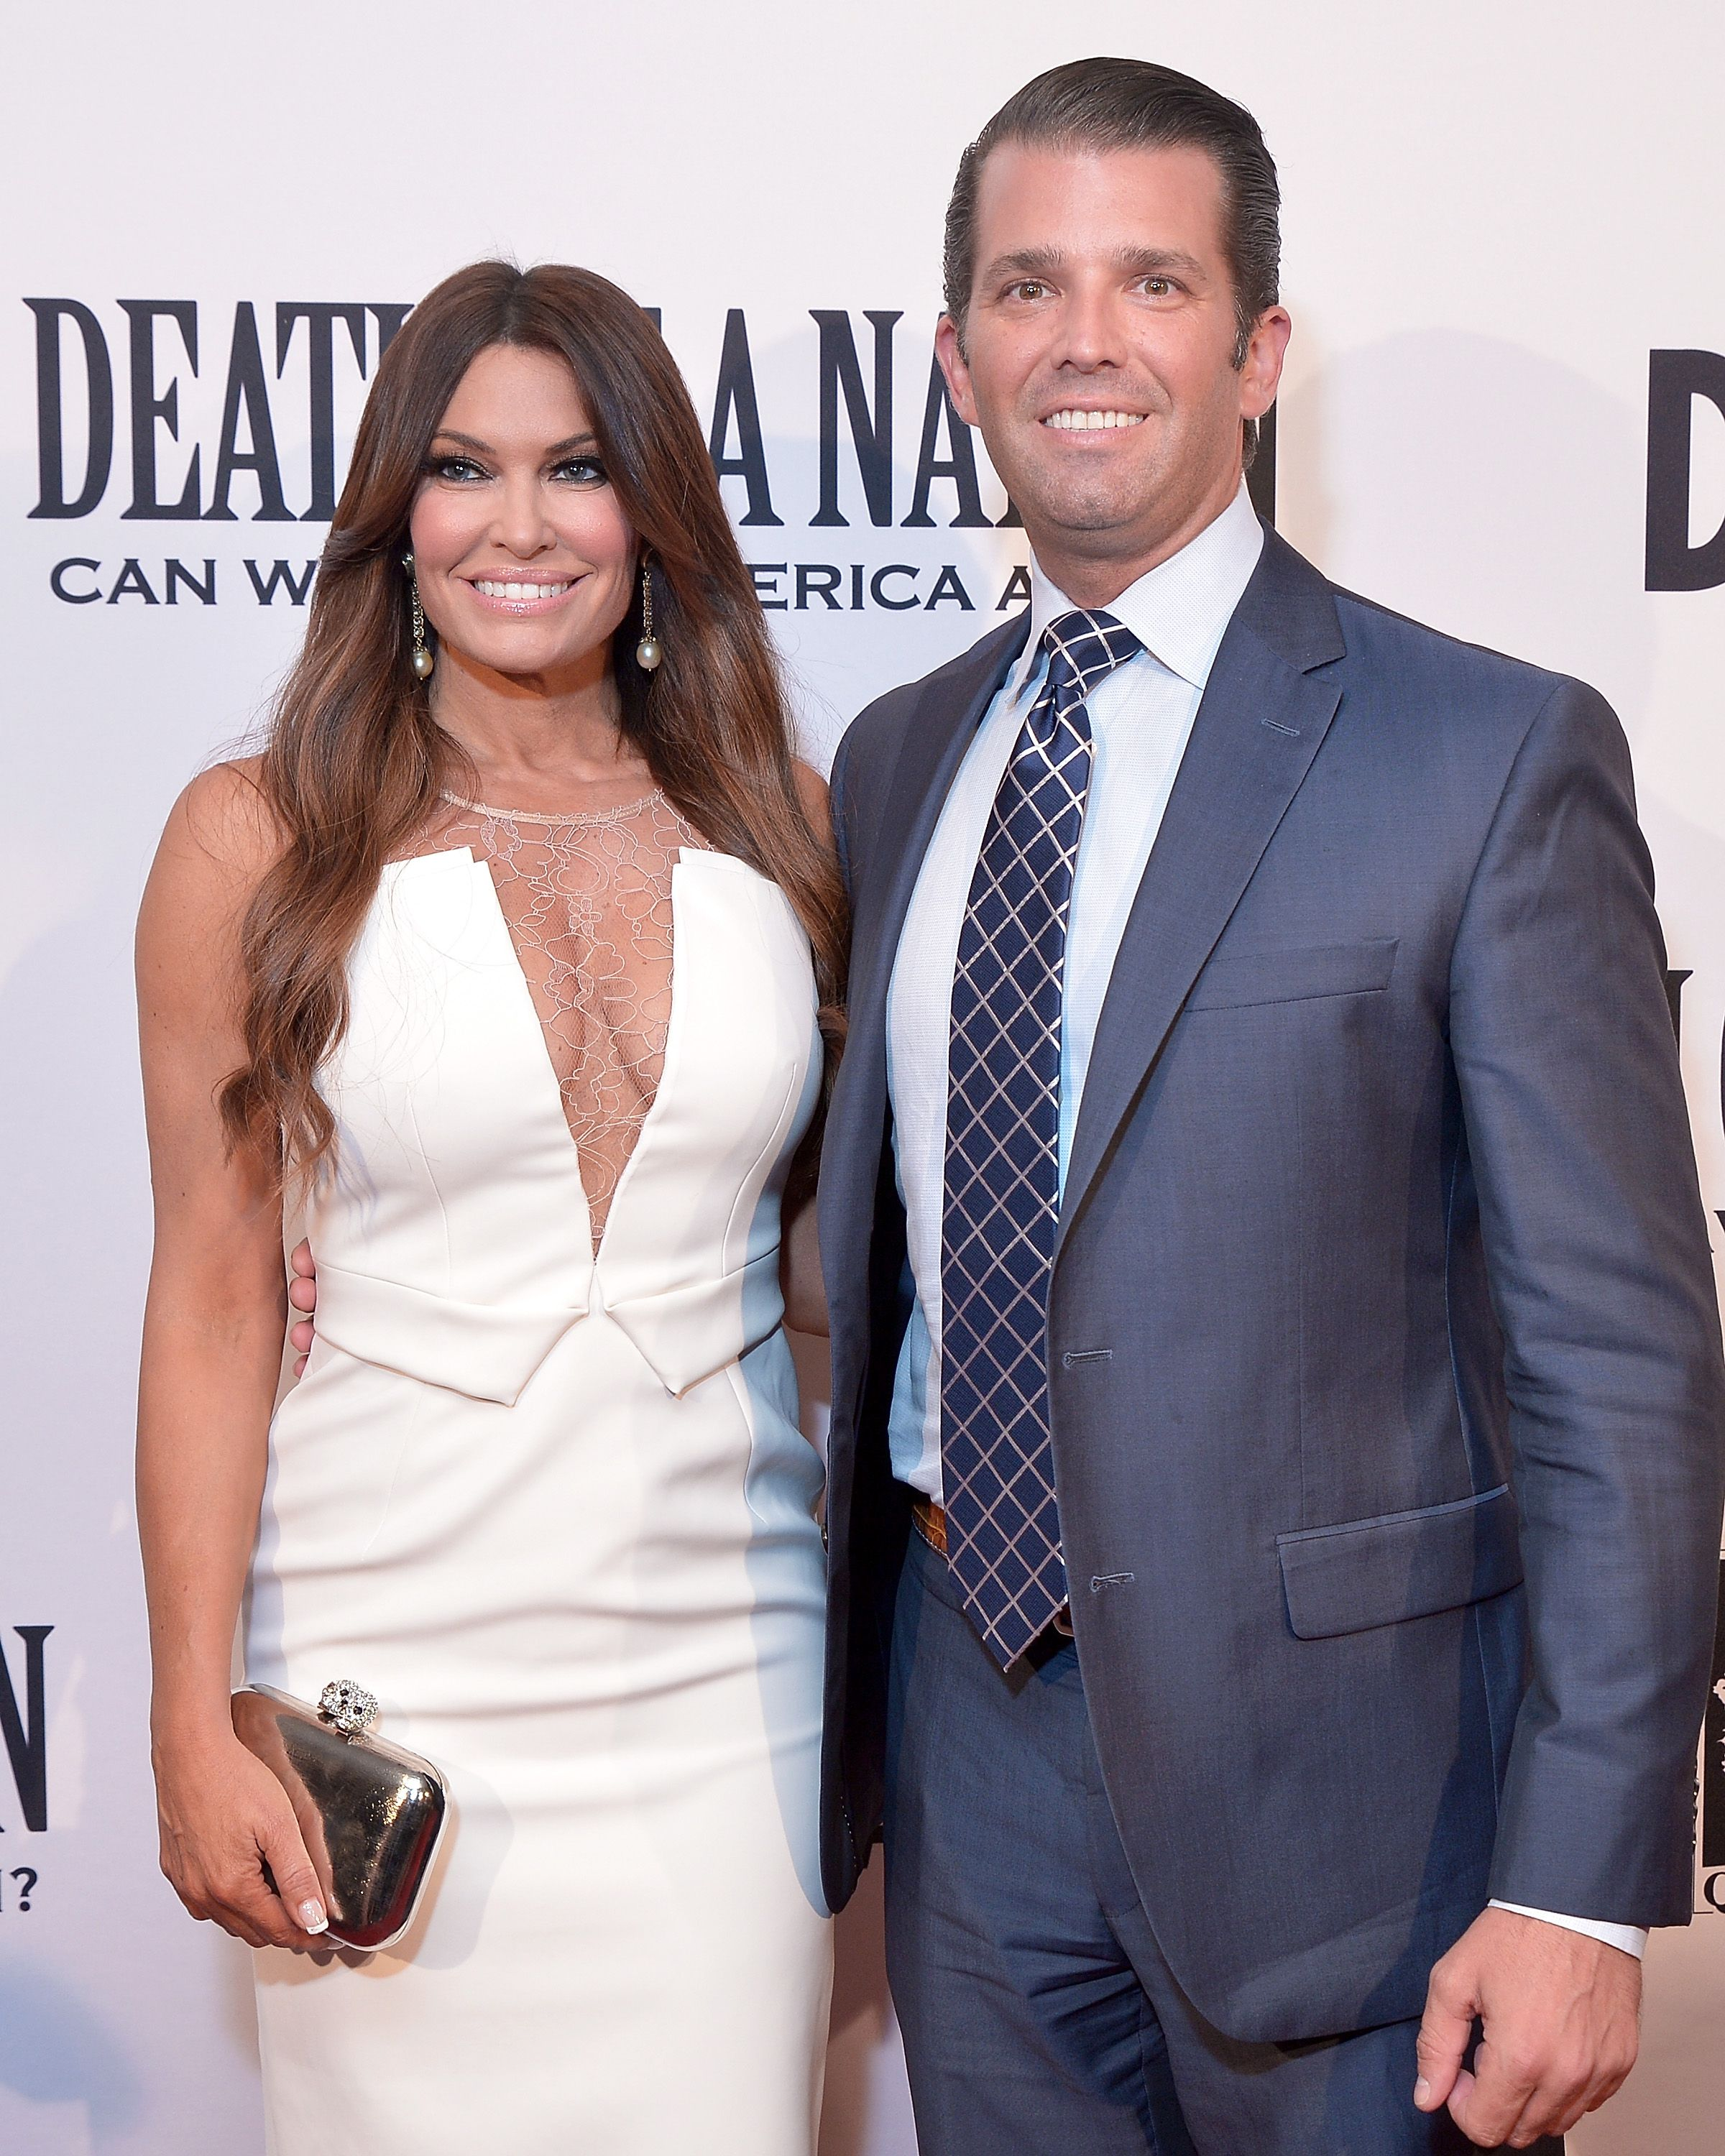 """Donald Trump Jr. and girlfriend denied service at Montana restaurant: """"Just not who we are"""""""